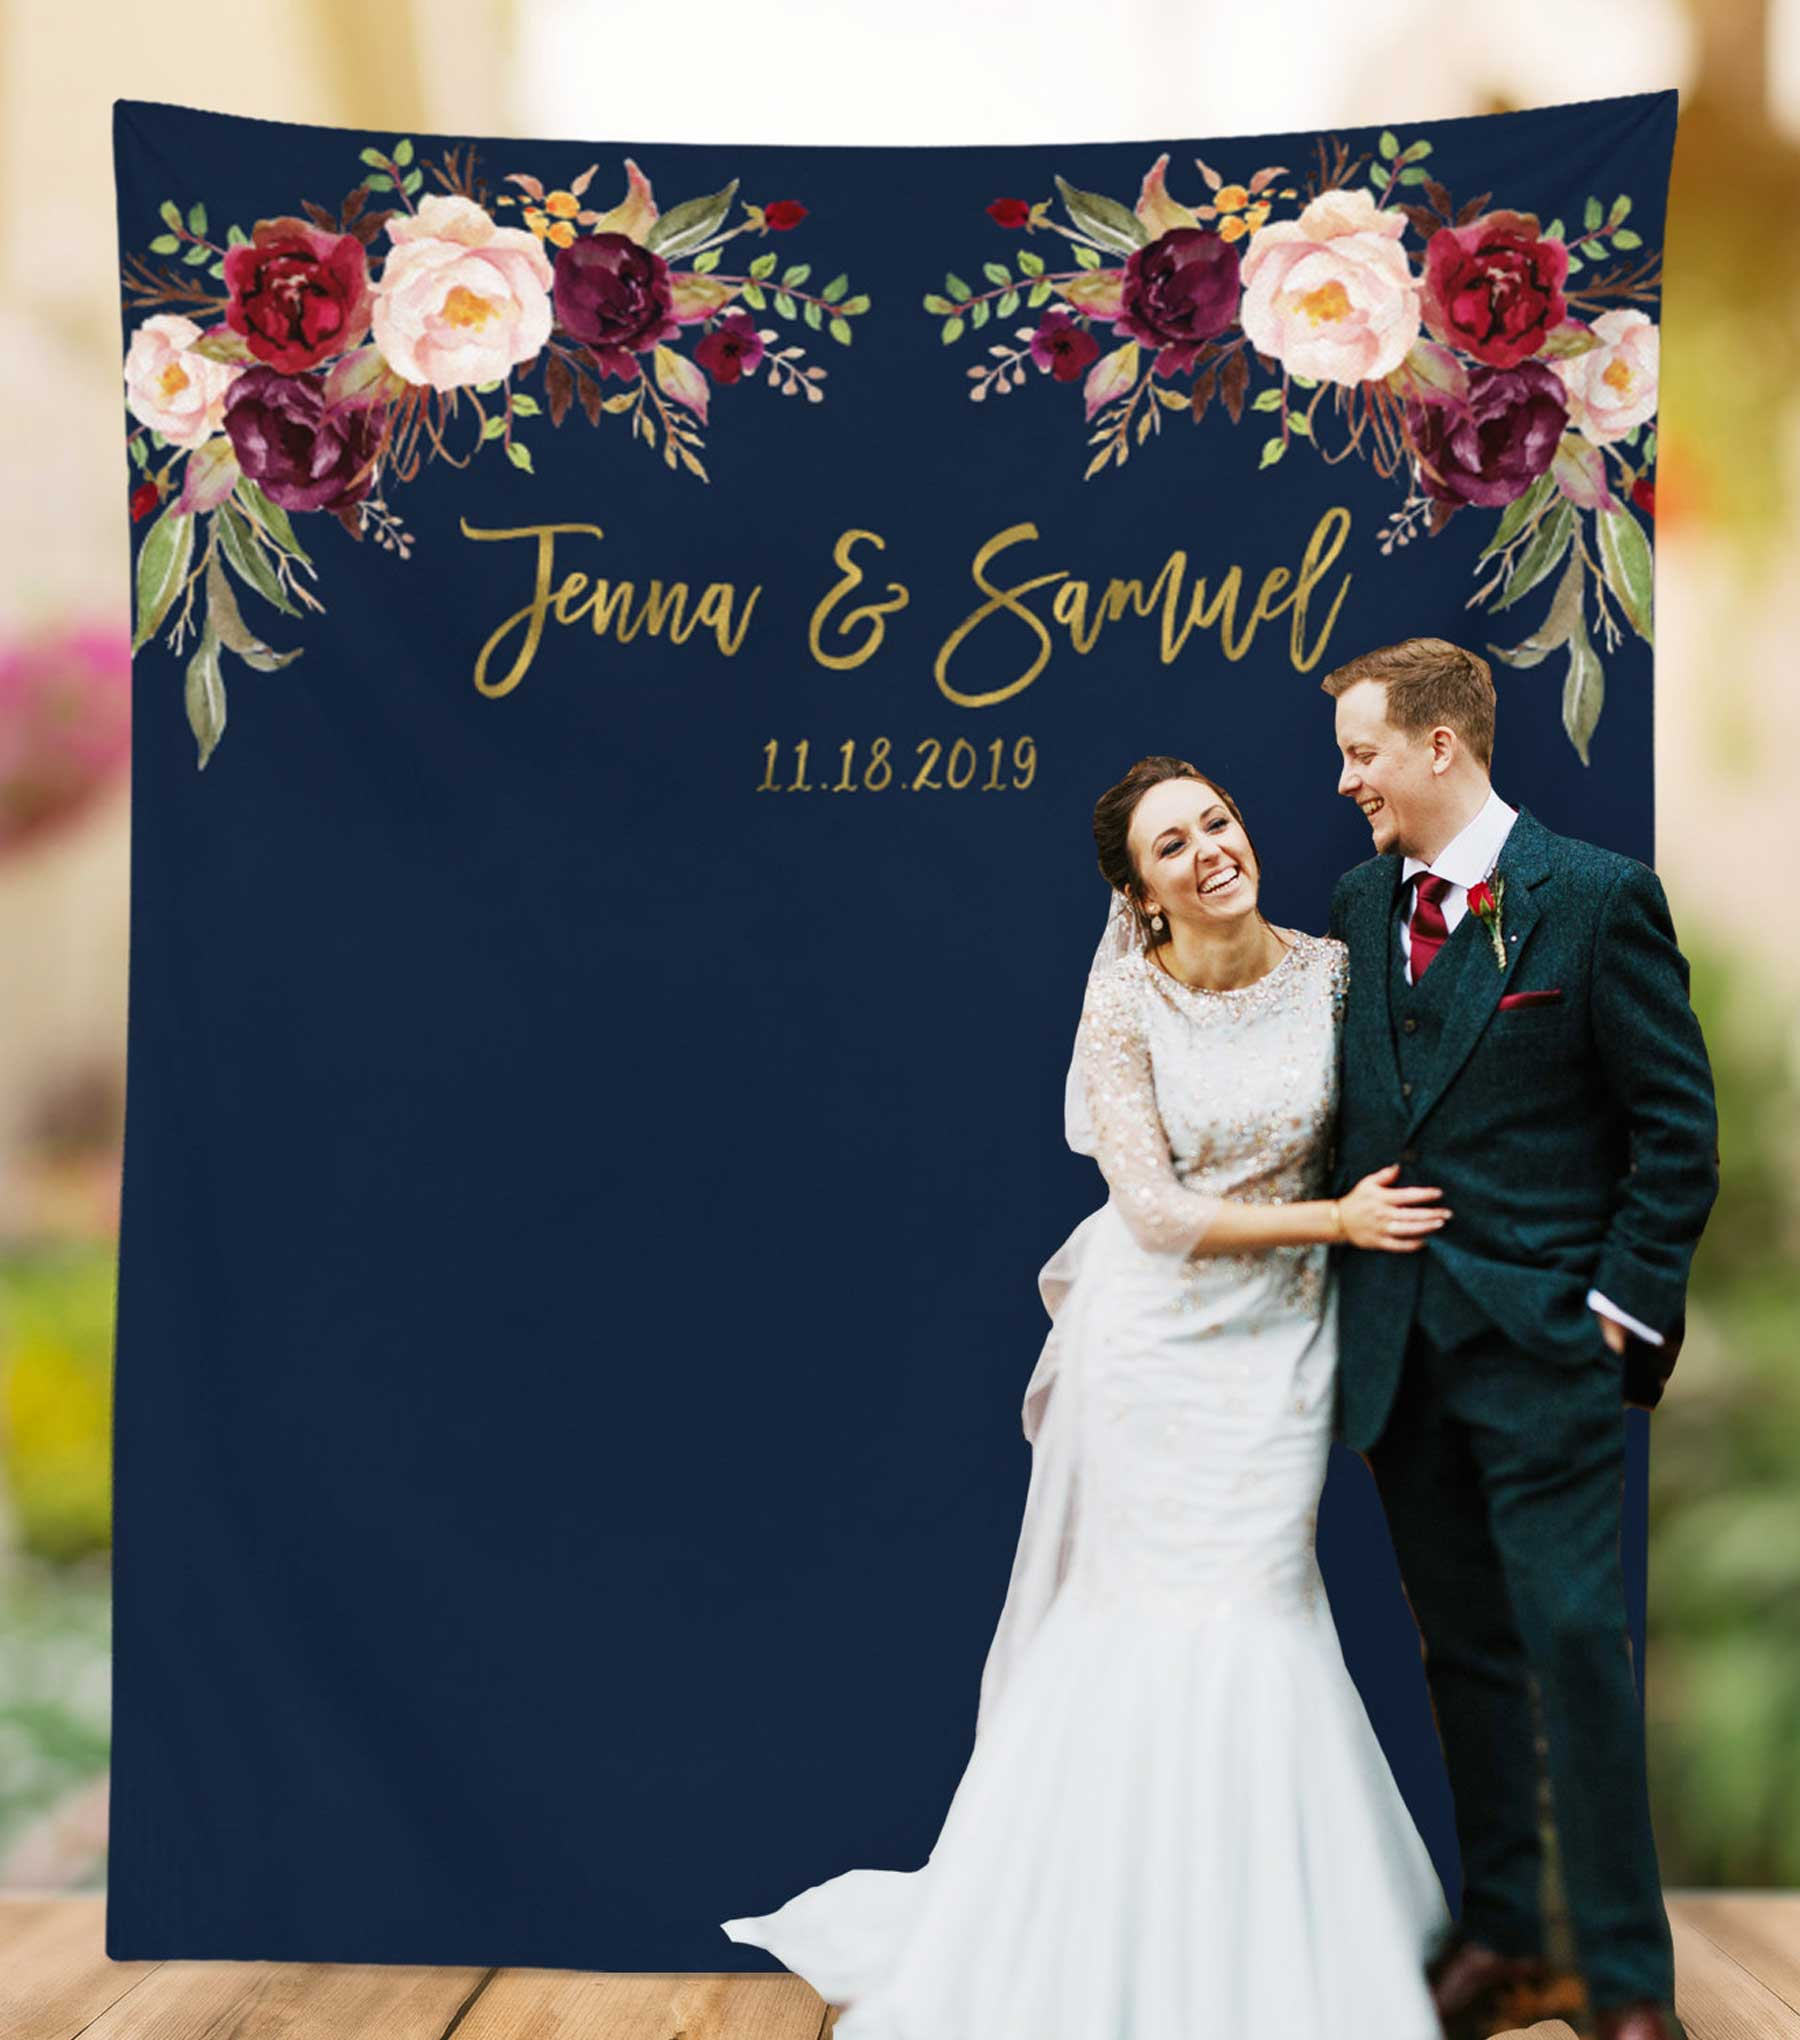 Navy and Gold Wedding Backdrop Design for Sale | Blushing Drops